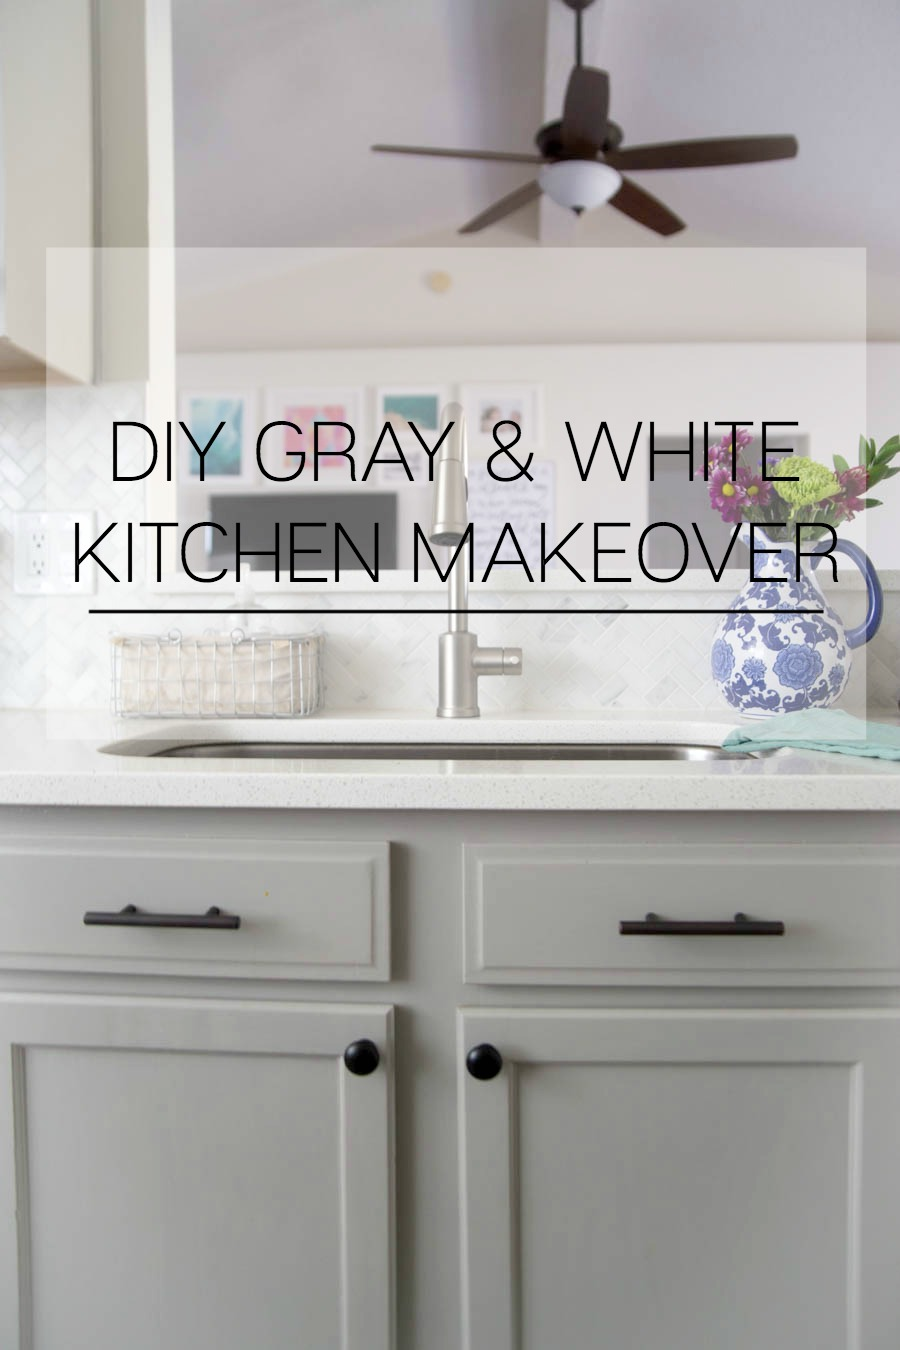 gray and white kitchen makeover   making home base  rh   makinghomebase com